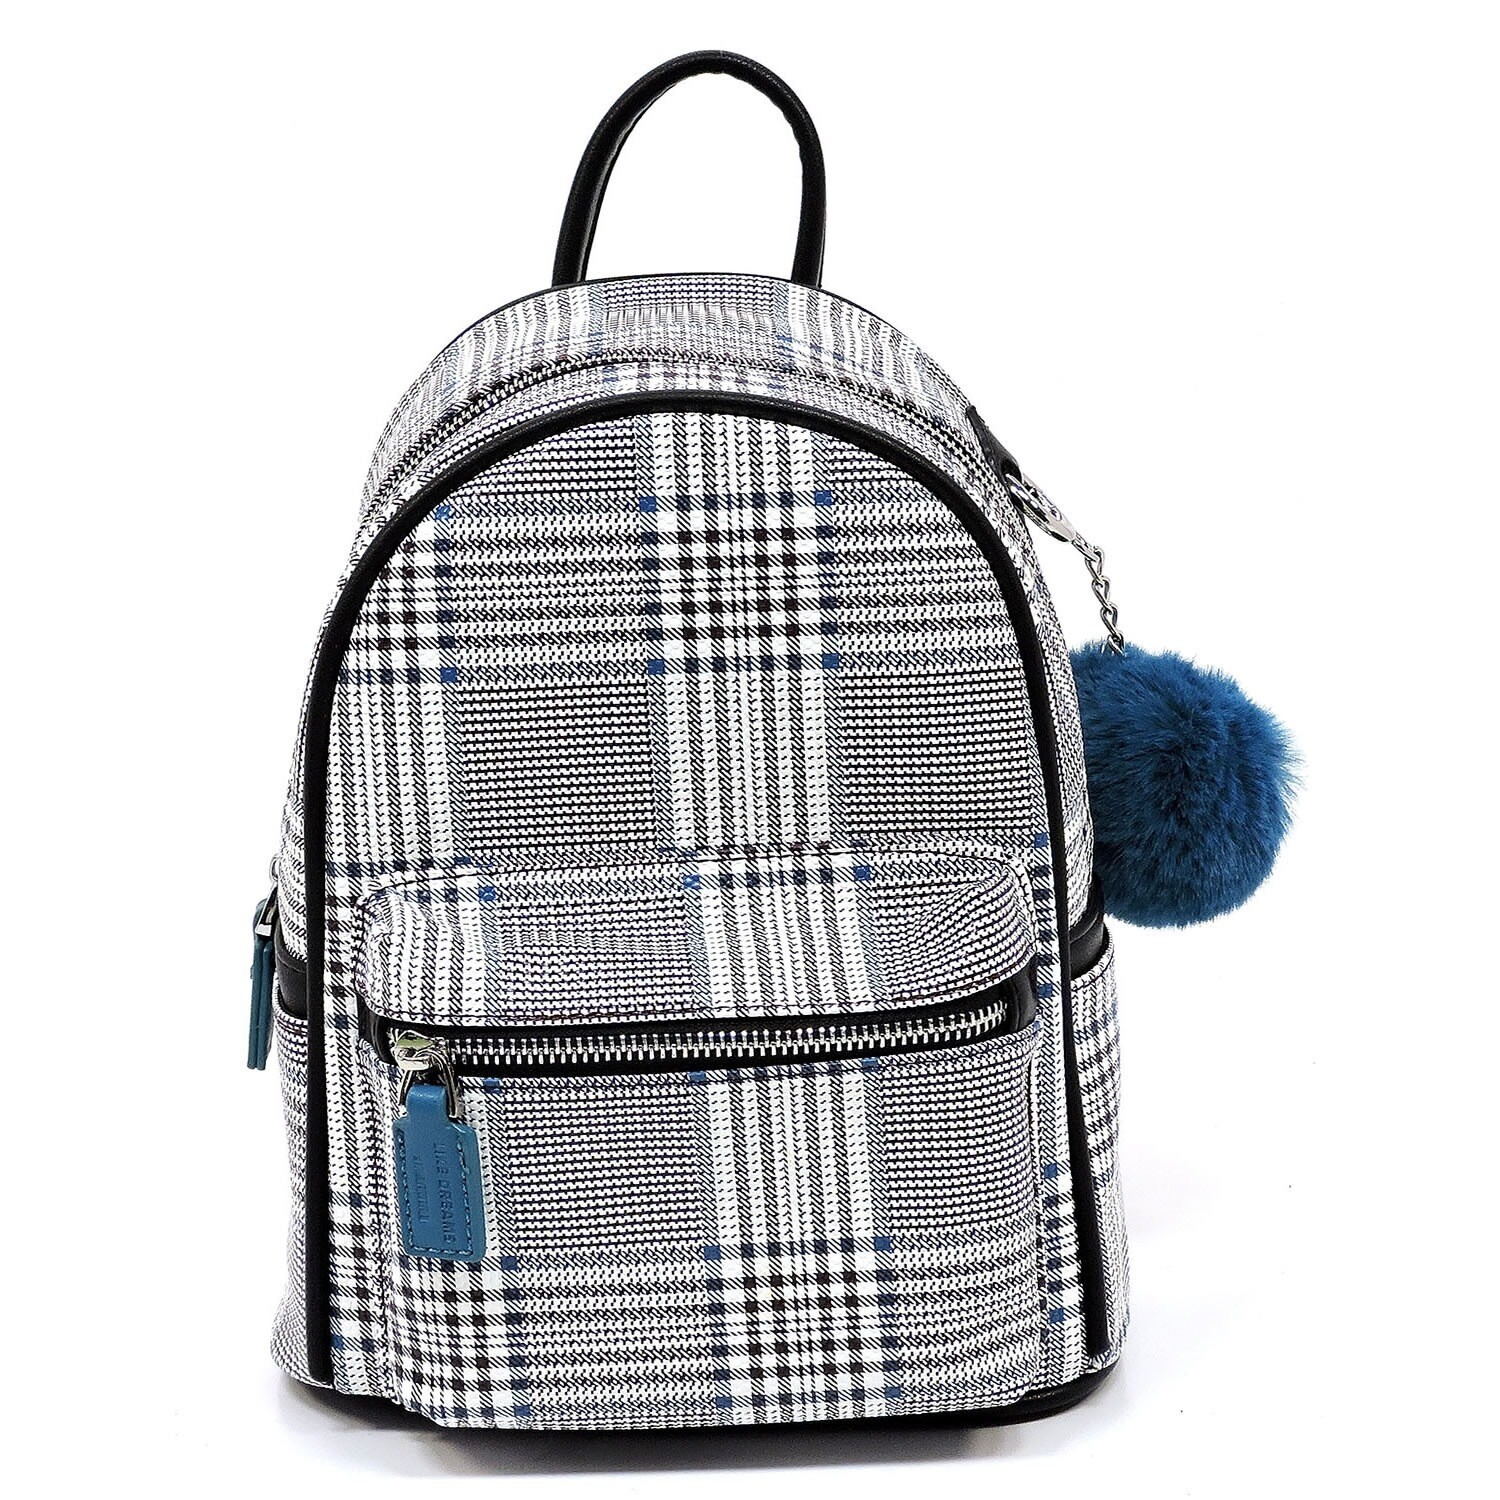 Houndstooth Backpack With Pompom